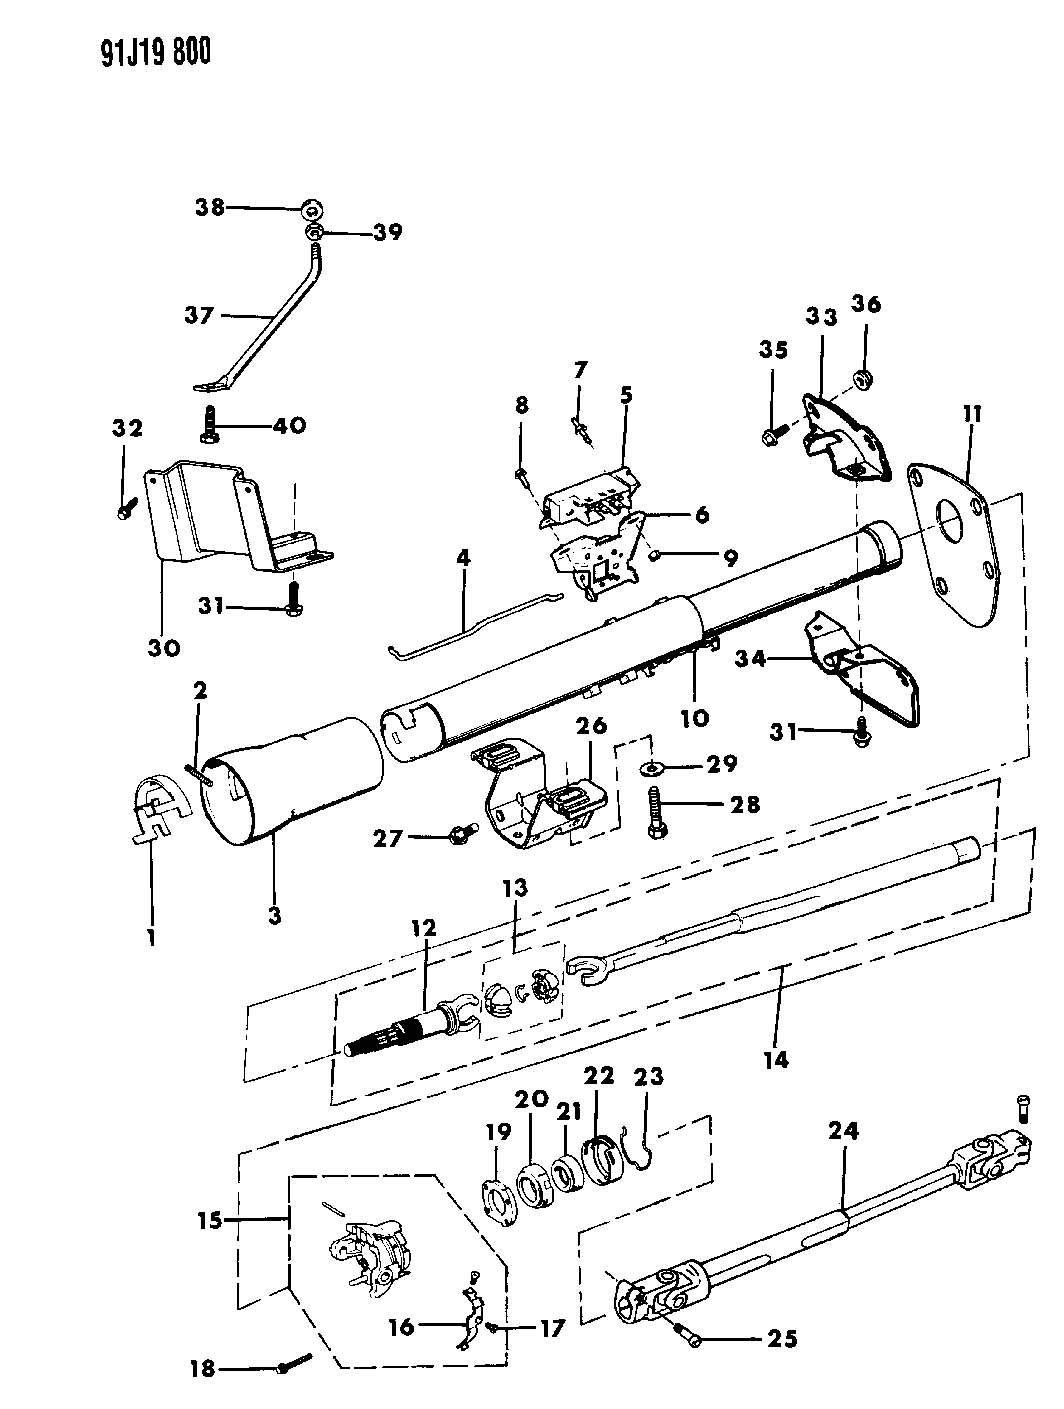 1994 jeep wrangler yj steering column parts